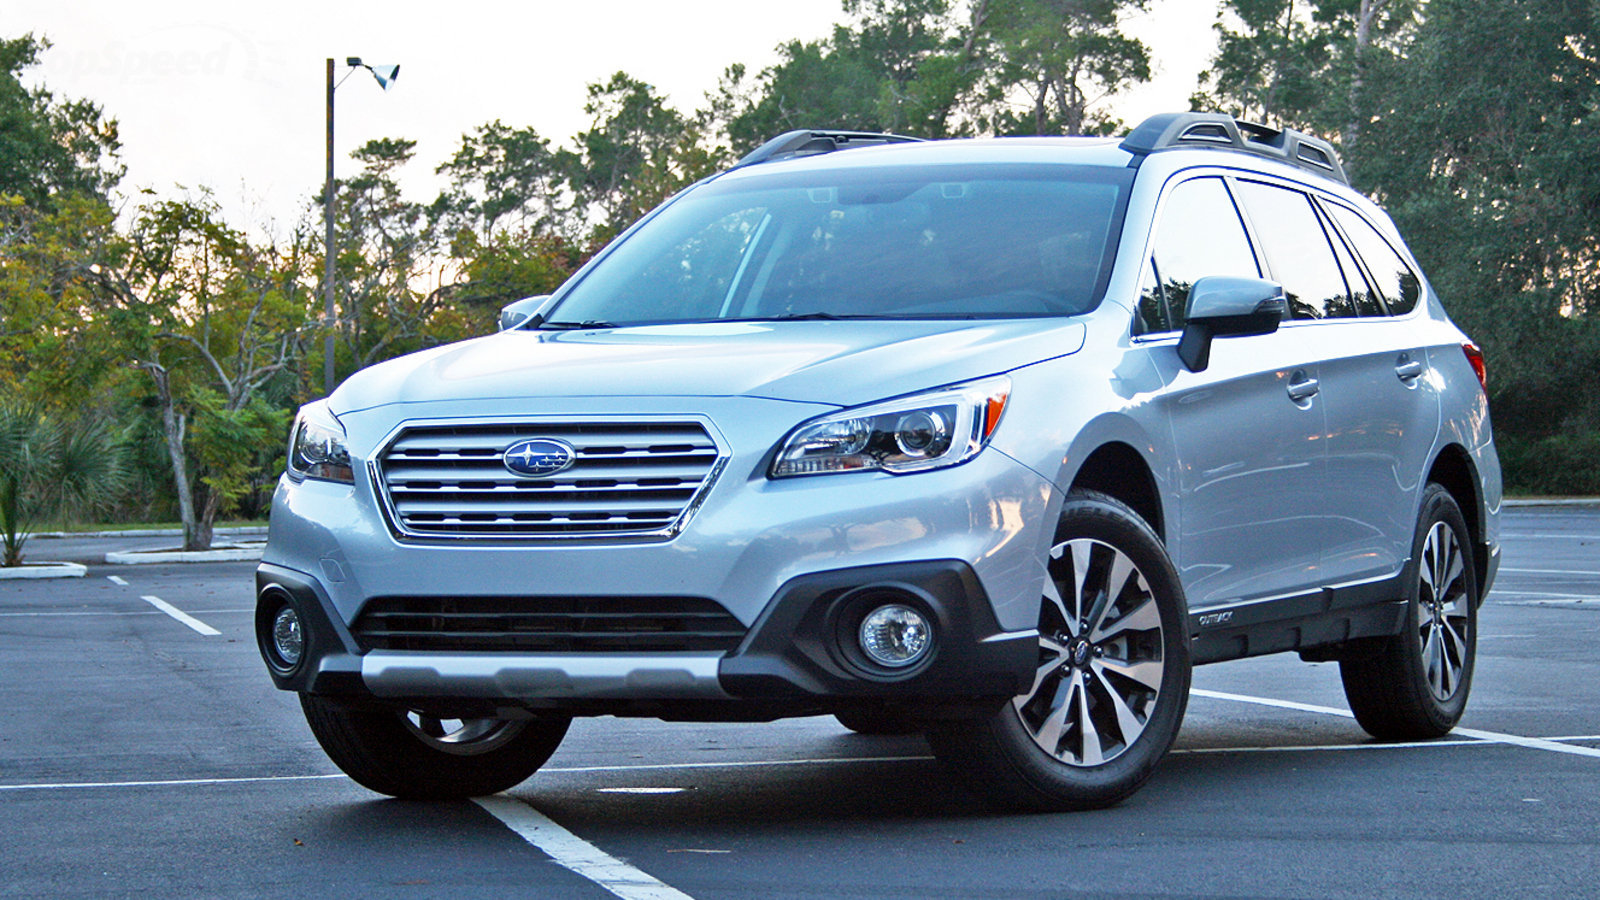 2016 subaru outback 3 6r limited driven review top speed. Black Bedroom Furniture Sets. Home Design Ideas